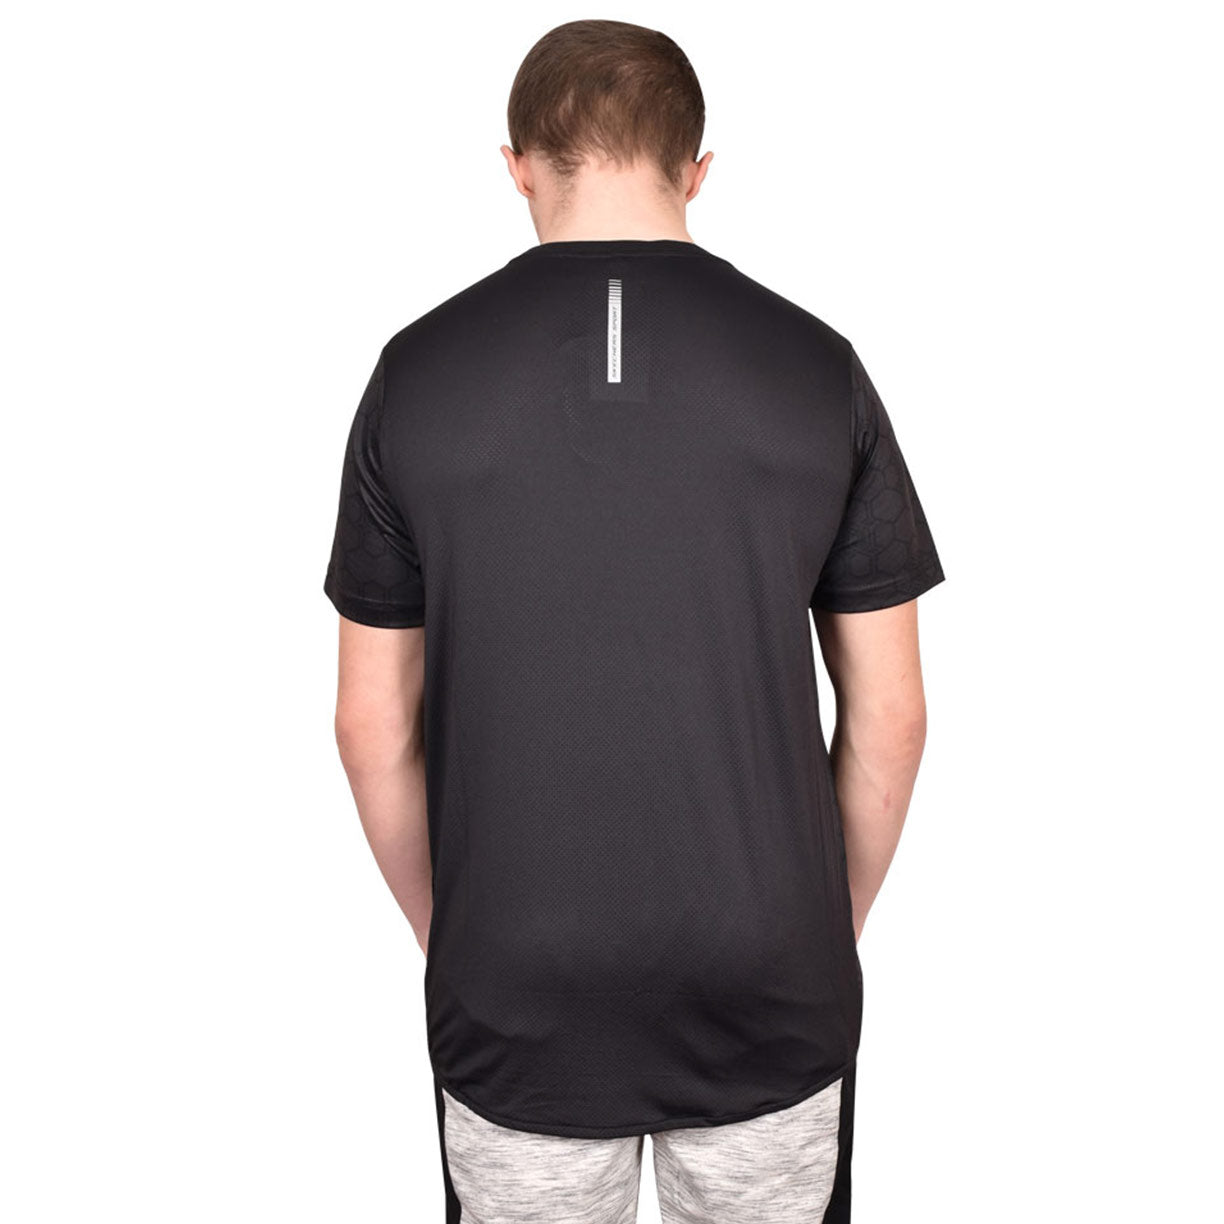 Skechers T Shirt Louis Black